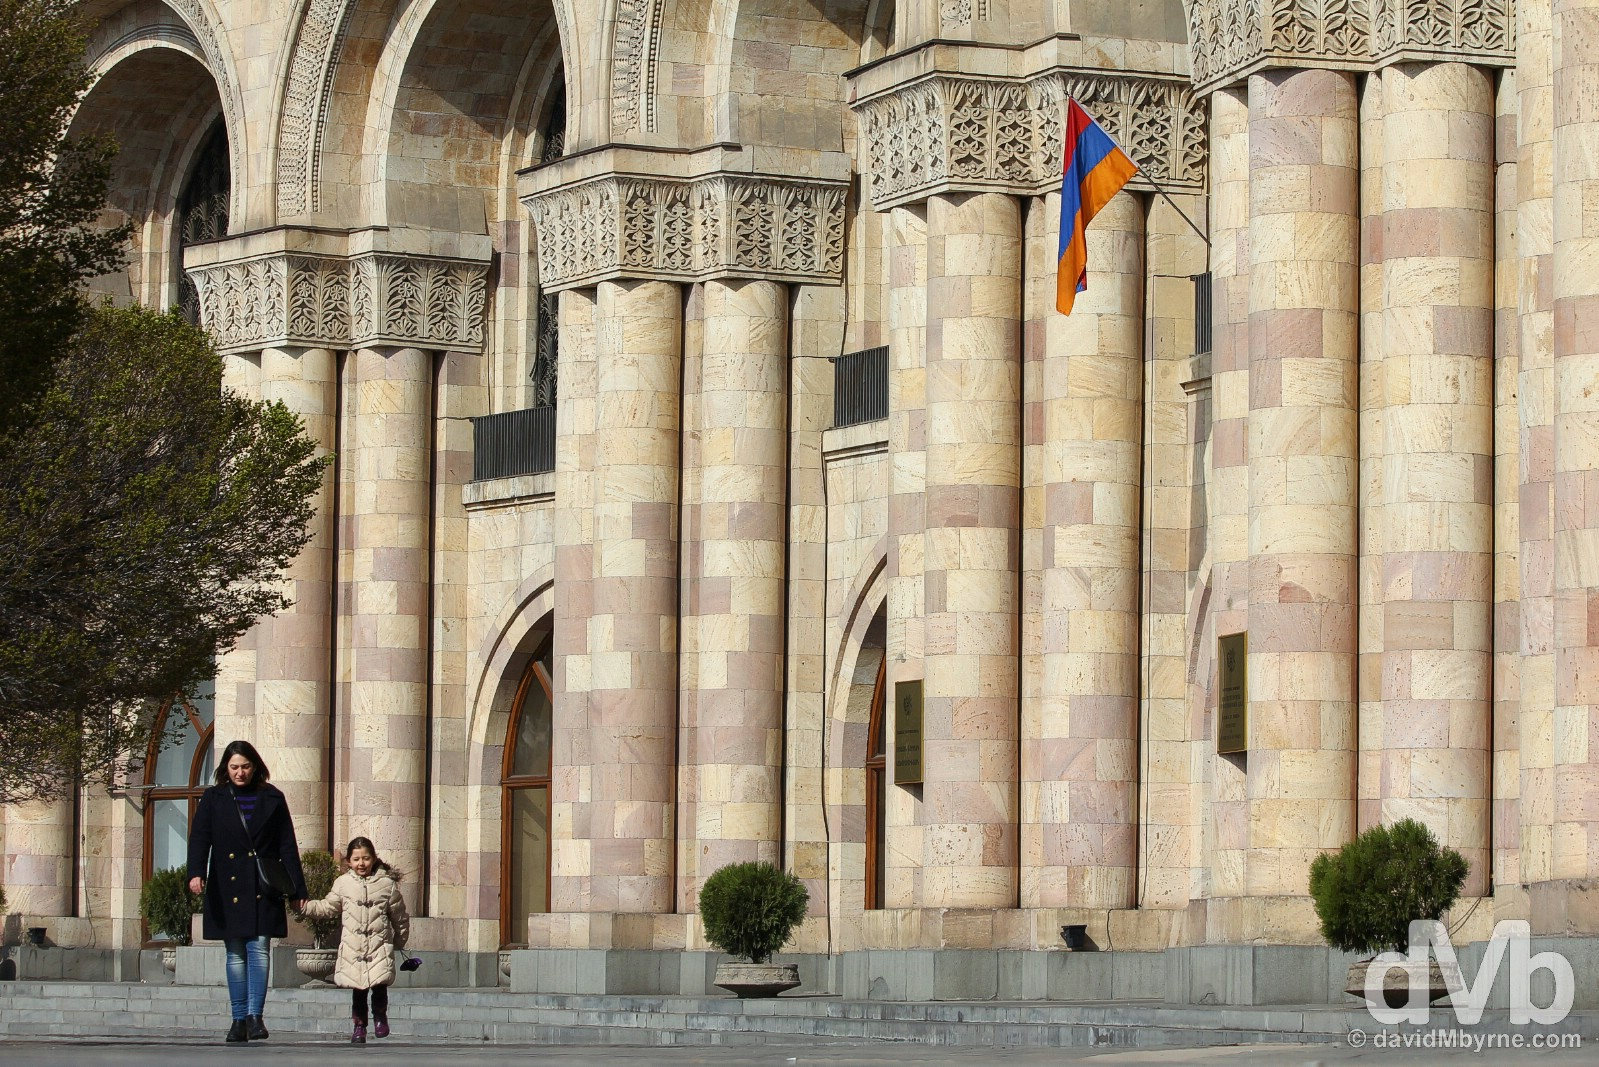 Outside the Ministry of Foreign Affairs in Hanrapetutyan Hraparak (Republic Square), Yerevan, Armenia. March 25, 2015.